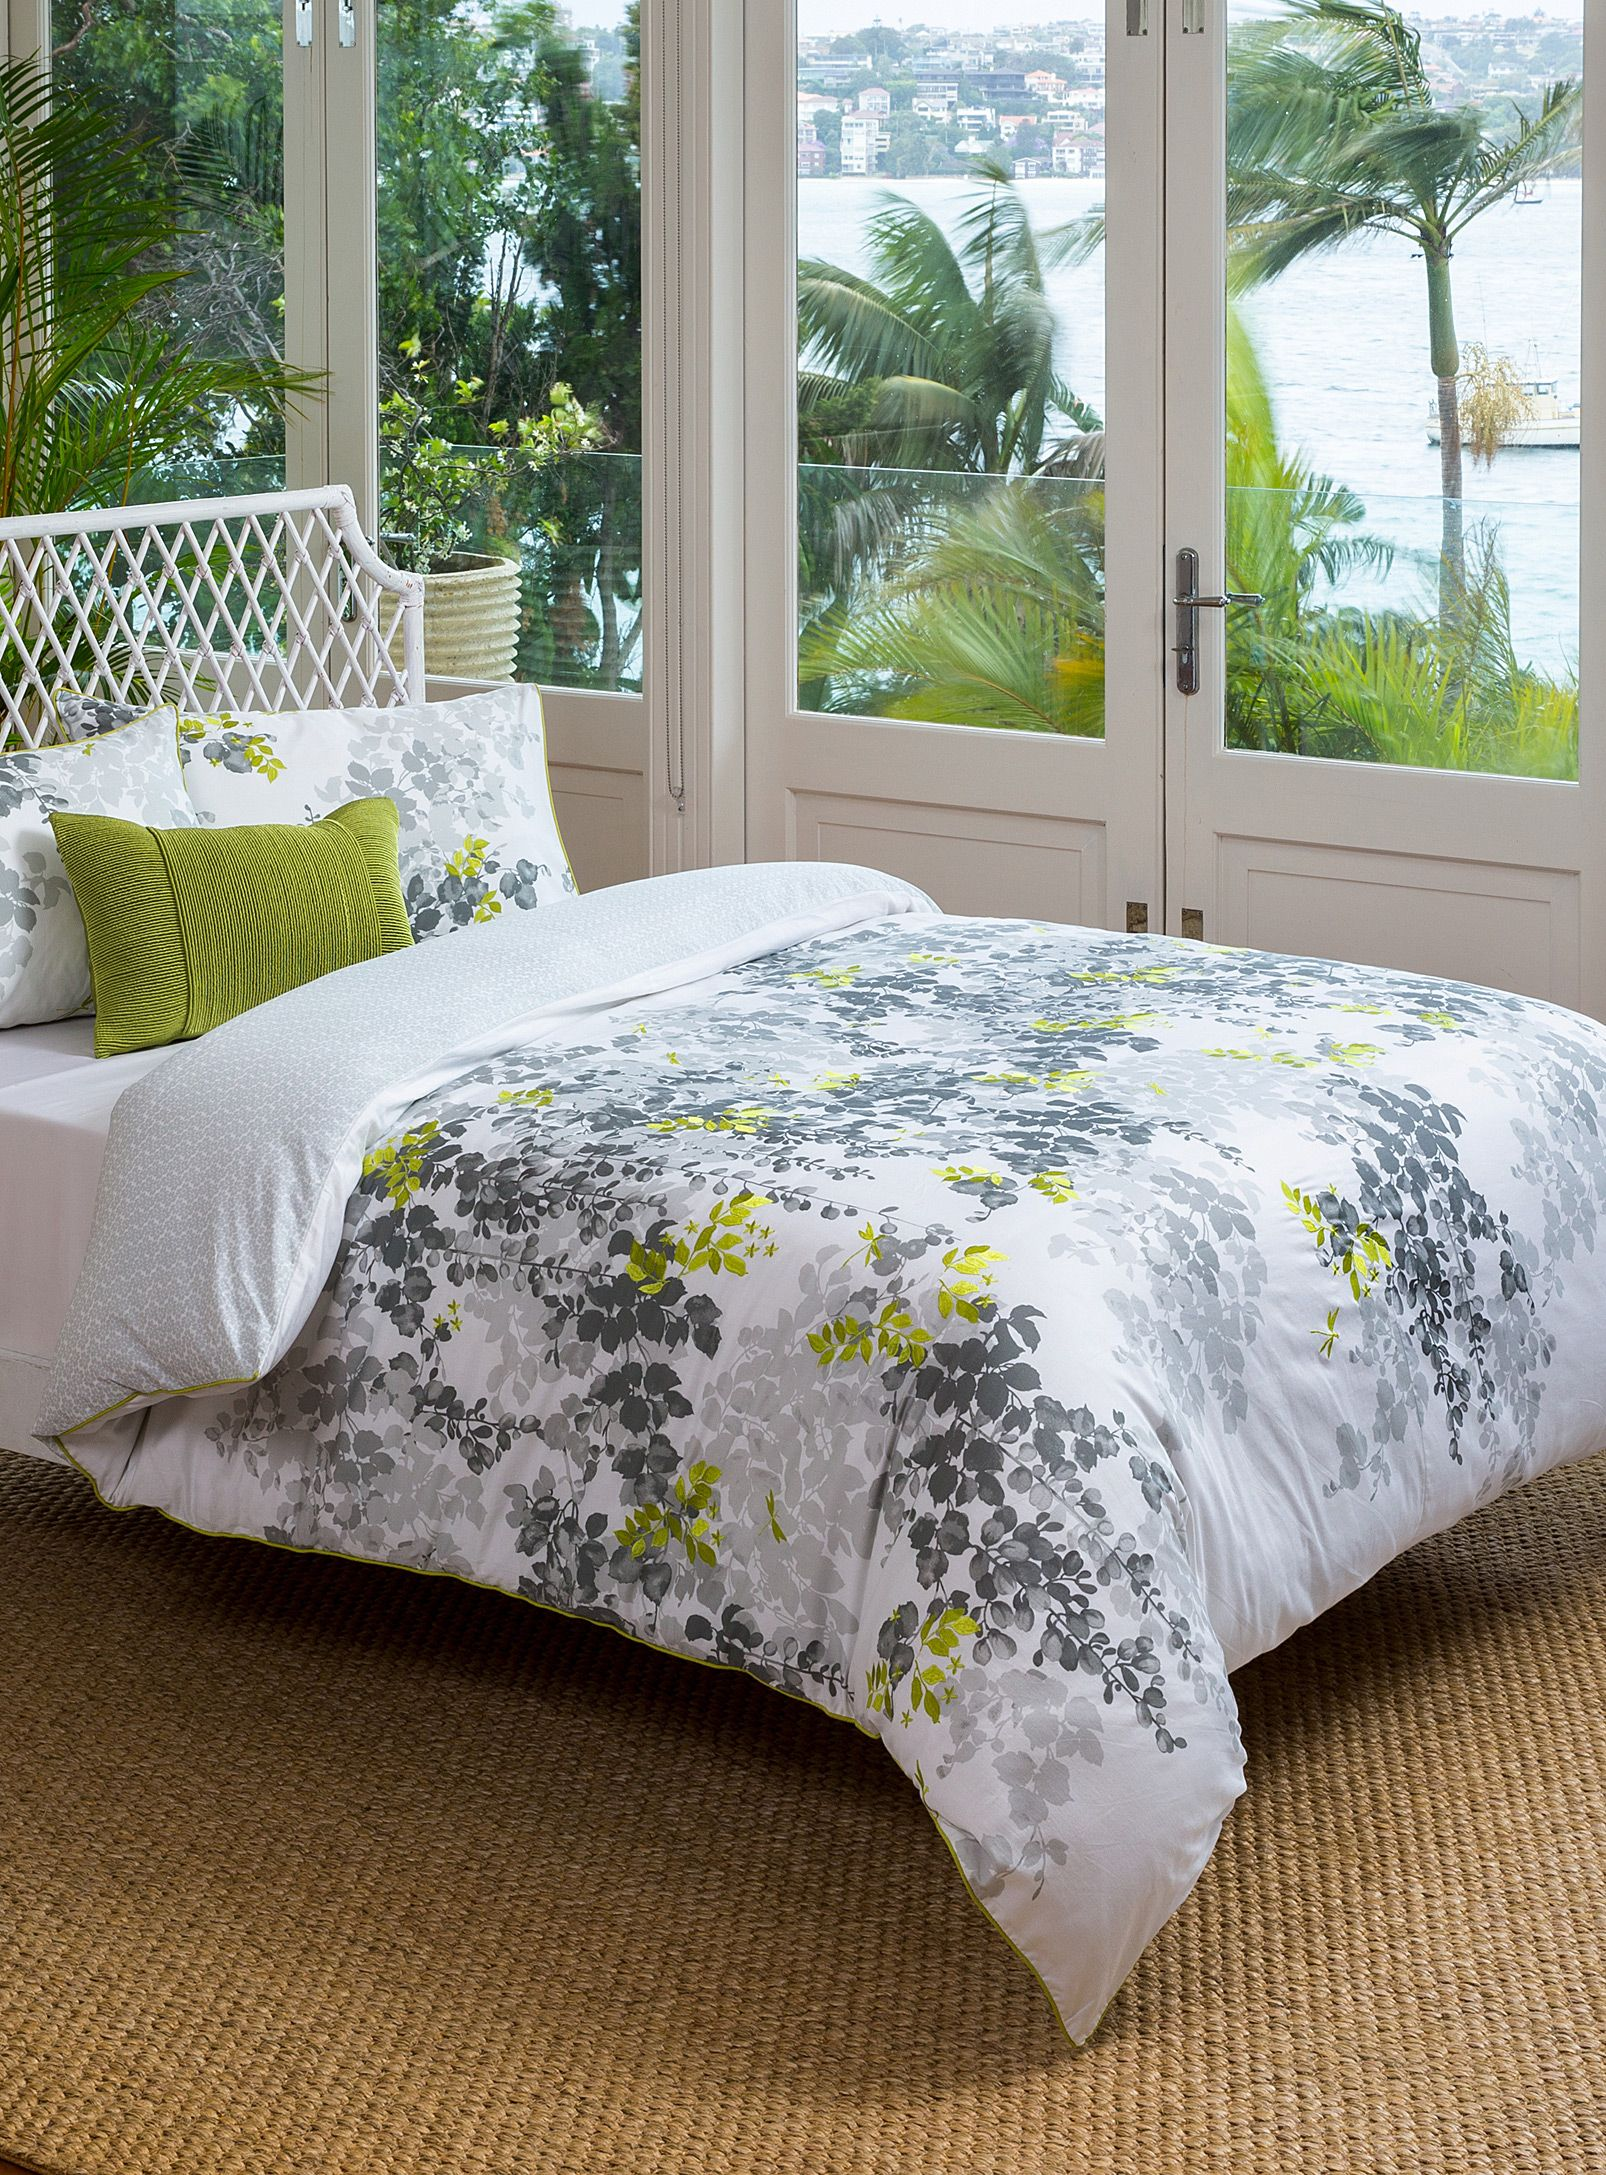 comforter beauty silk mulberry comforters quality dresses prom duvets and detail